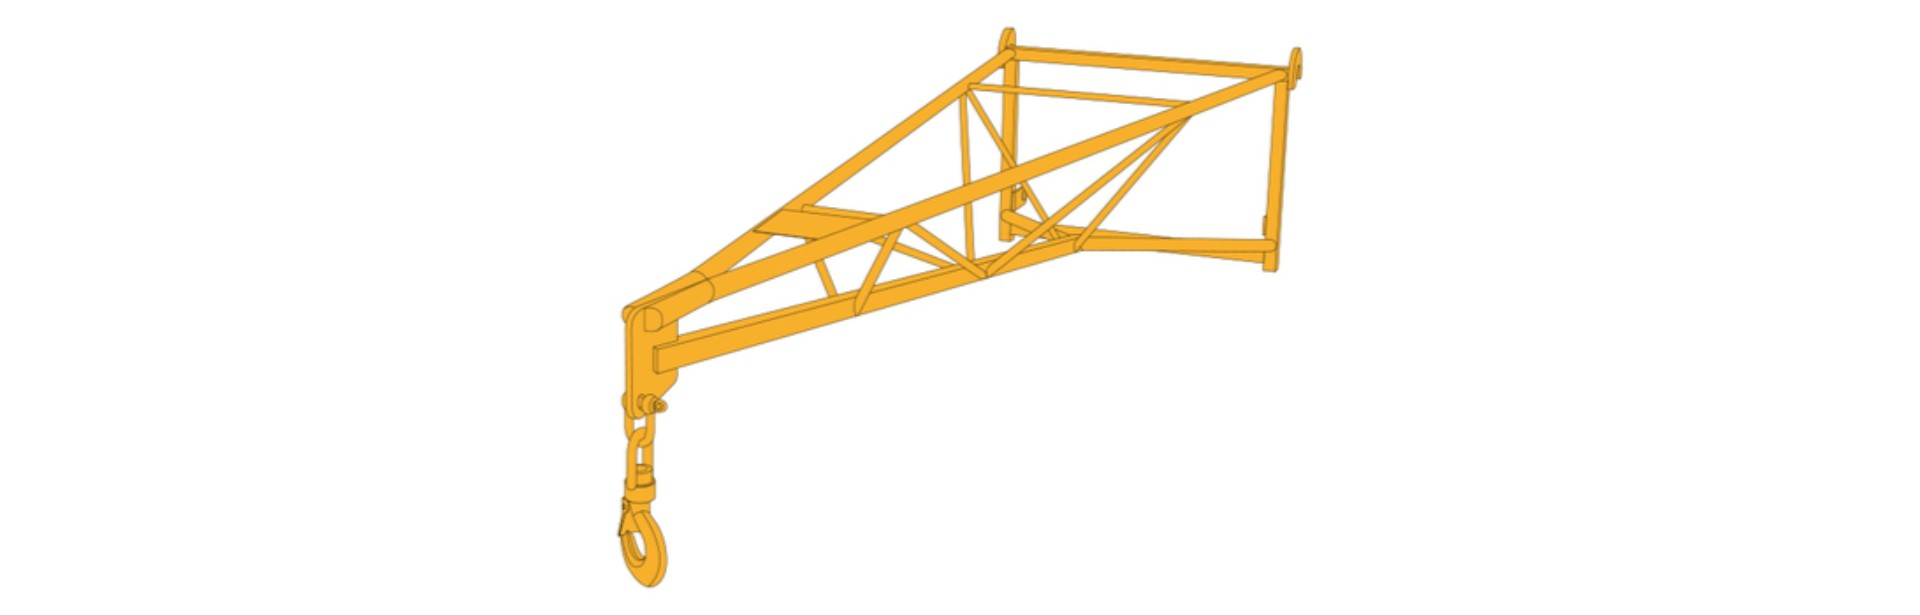 JCB Lifting Equipment Saudi Arabia